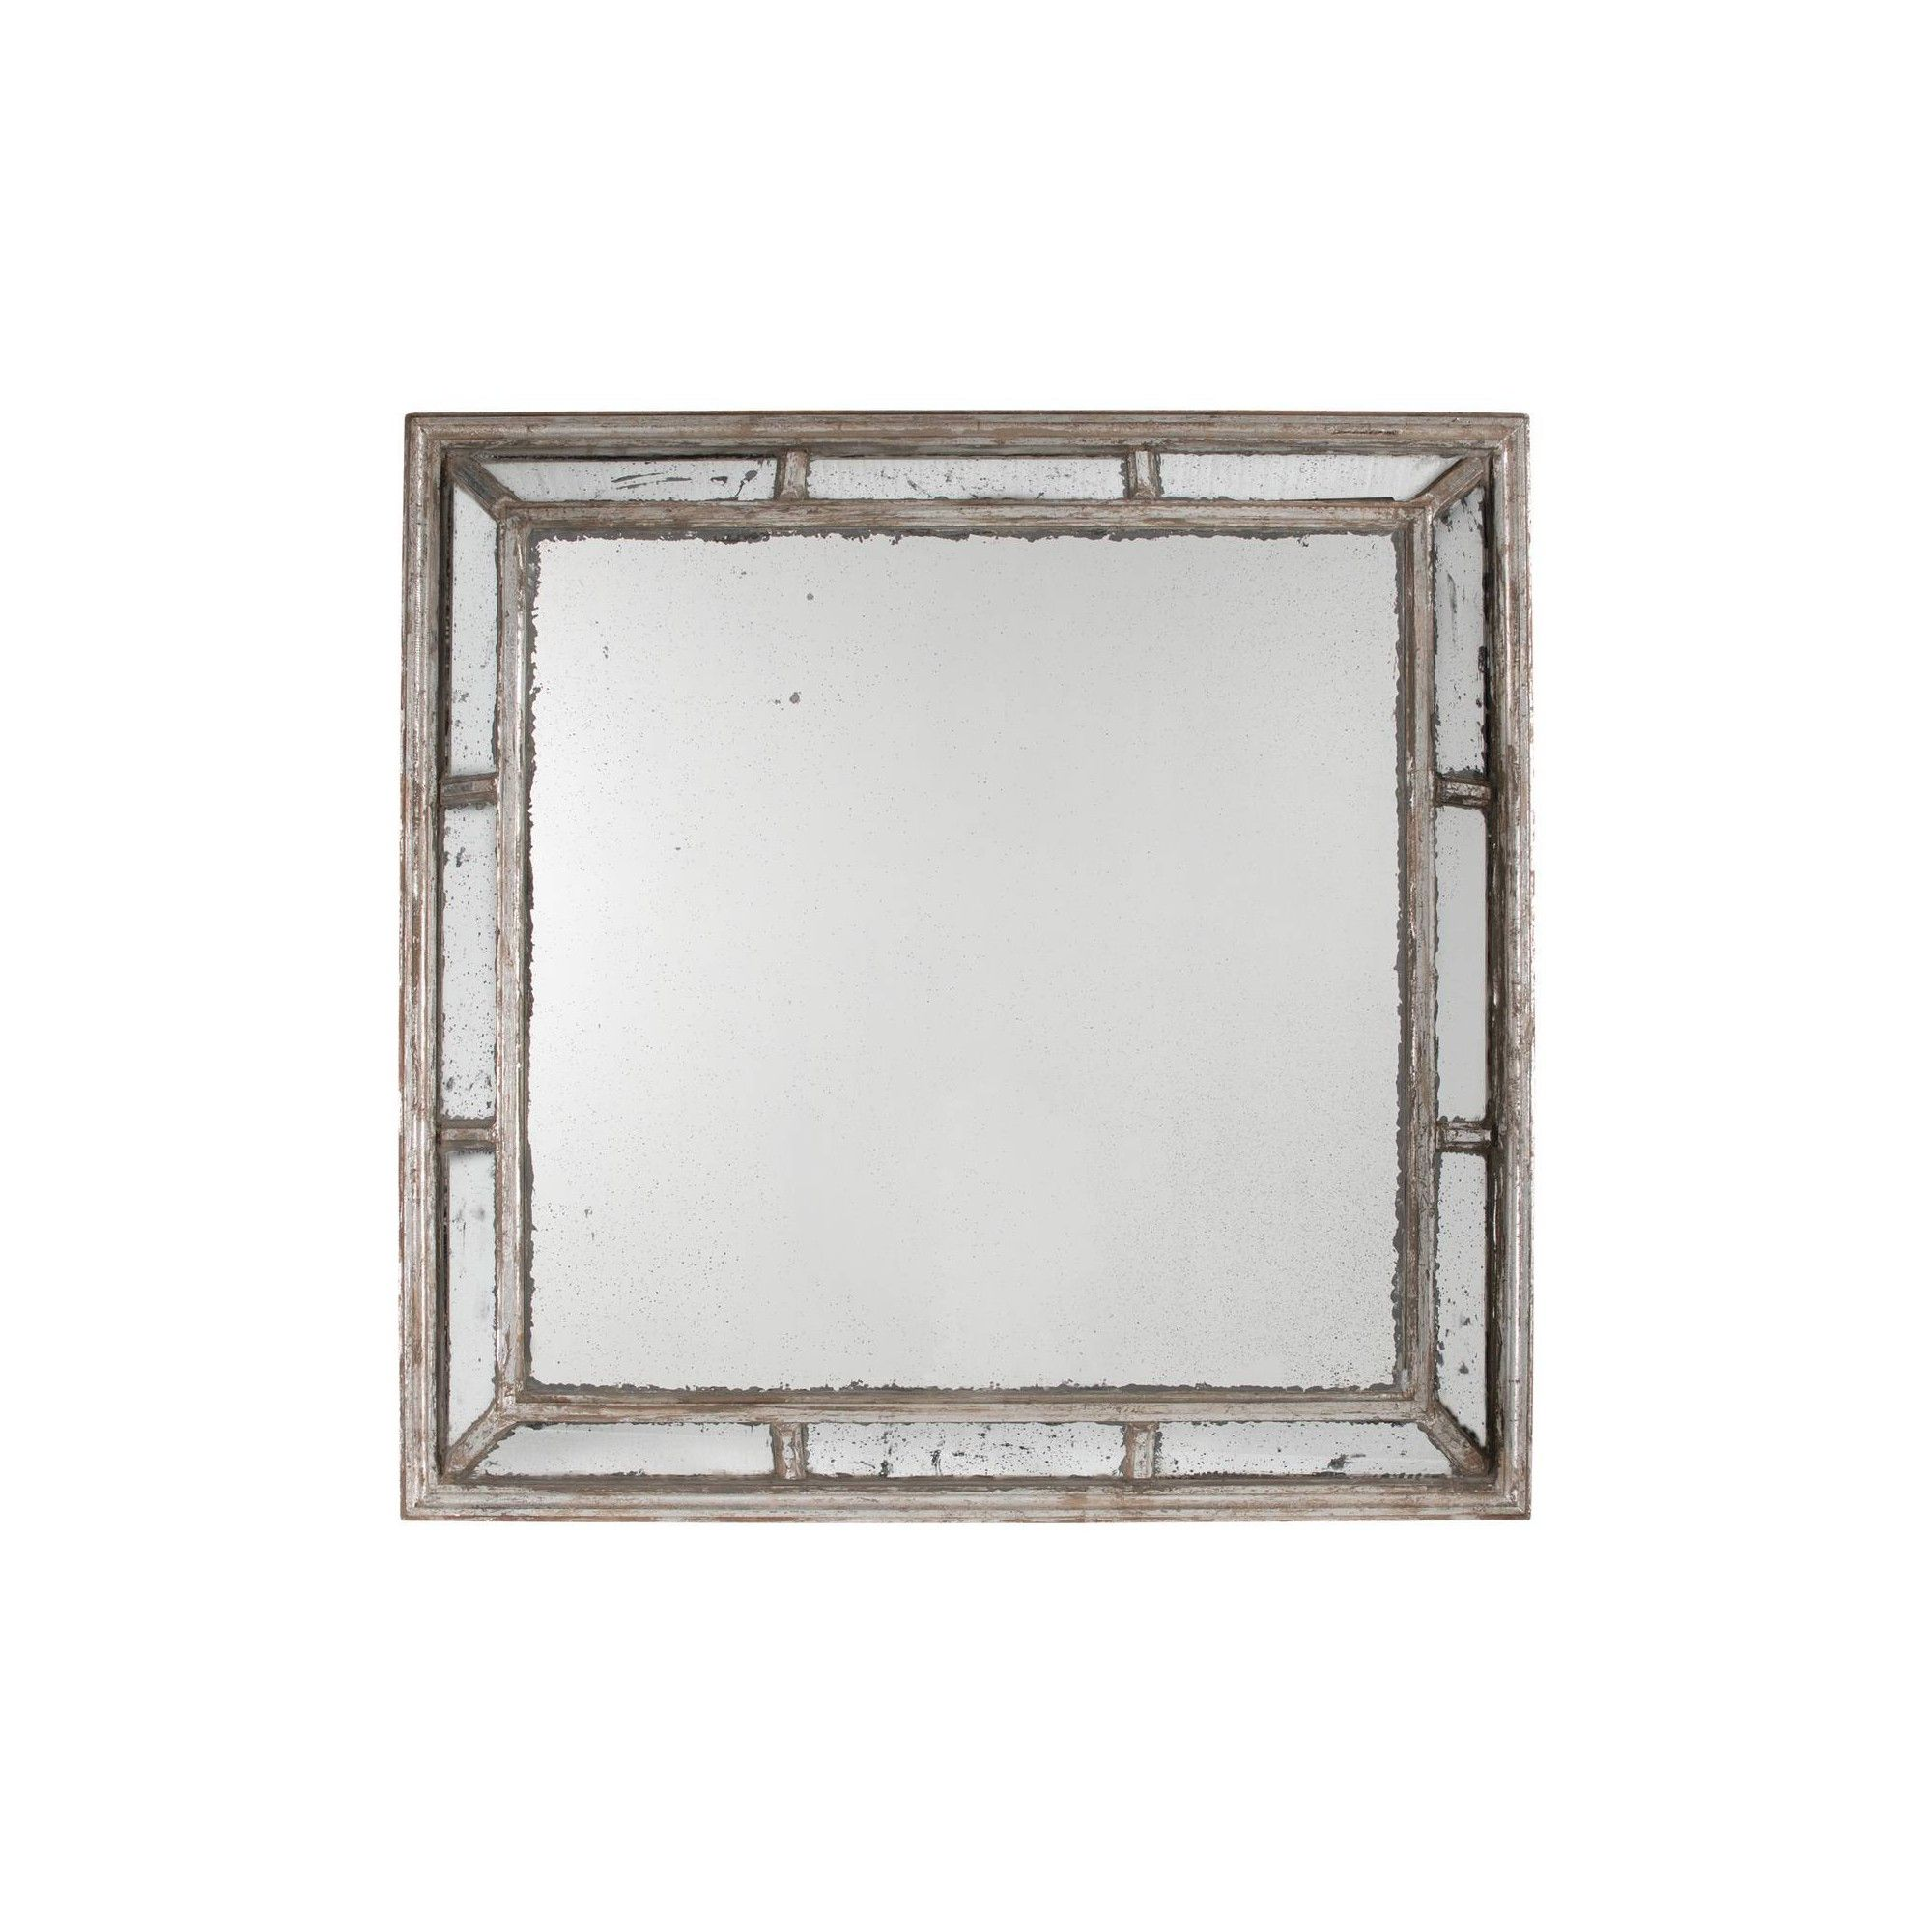 Irving Square Framed Mirror Antique White A B Home Adult Unisex